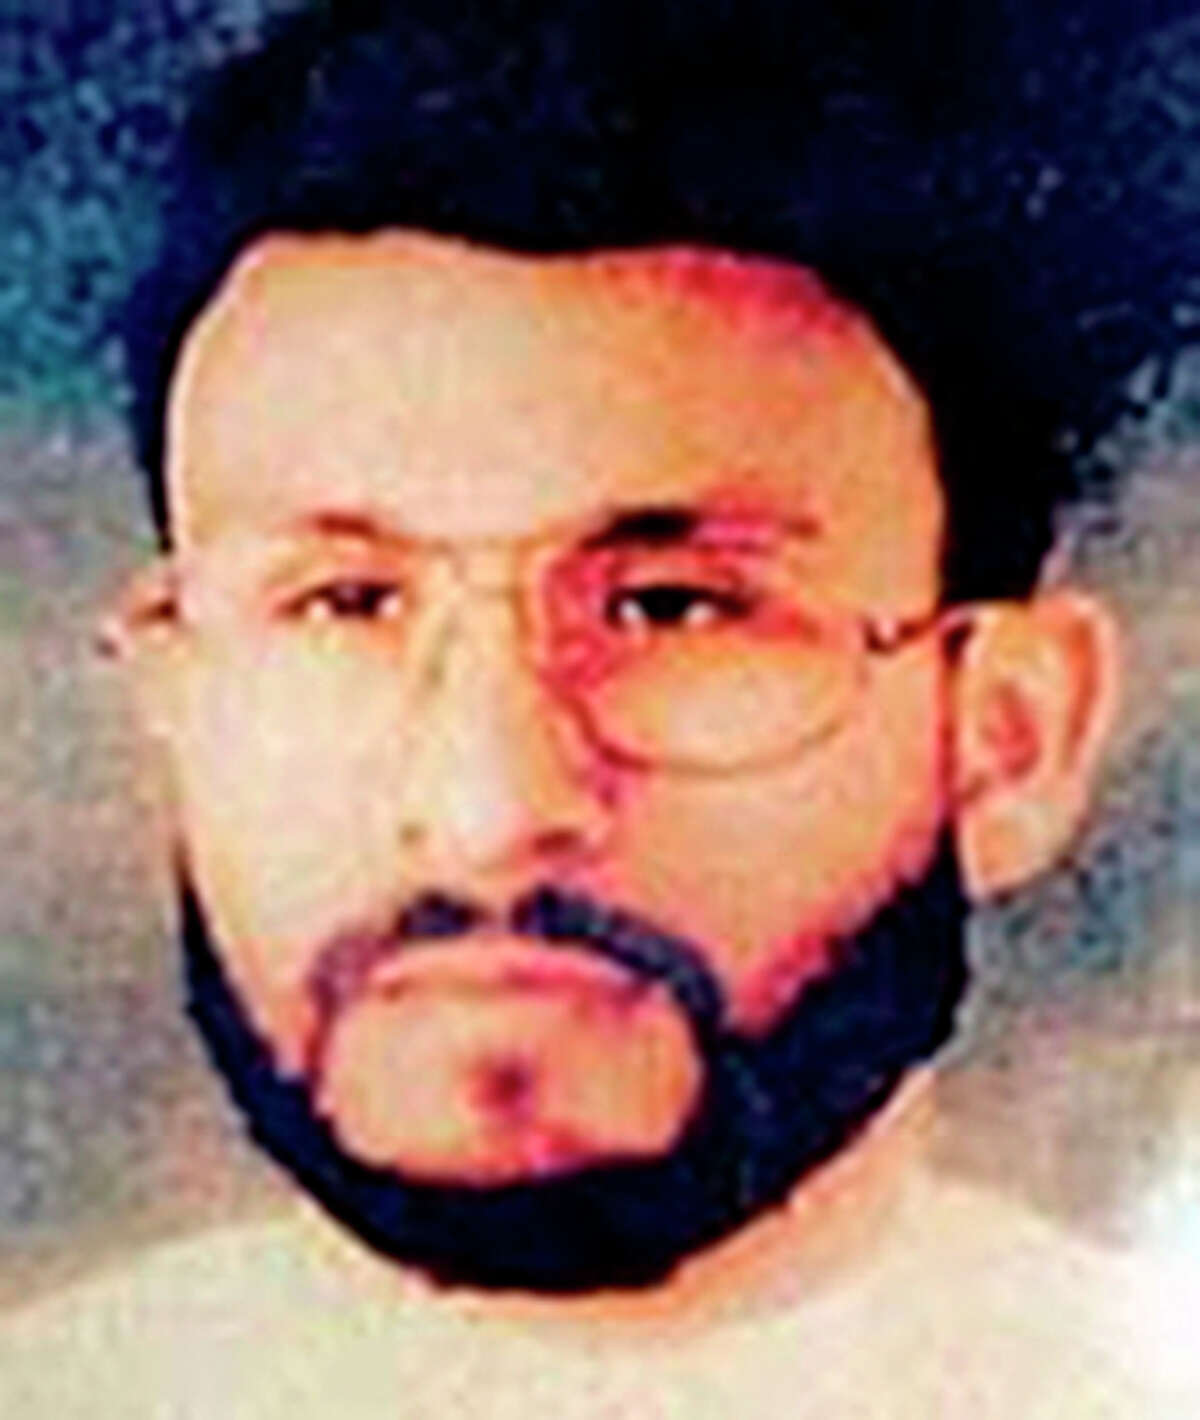 This undated file photo provided by U.S. Central Command, shows Abu Zubaydah, date and location unknown. Zubaydah was the CIA's guinea pig. He was the first high-profile al Qaida terror suspect captured after the Sept. 11 attacks and the first to vanish into the spy agency's secret prisons, the first subjected to grinding white noise and sleep deprivation tactics and the first to gasp under the simulated drowning of waterboarding. Zubaydah's stark ordeal became the CIA's blueprint for the brutal treatment of terror suspects, according to the Senate Intelligence Committee's report released Tuesday.